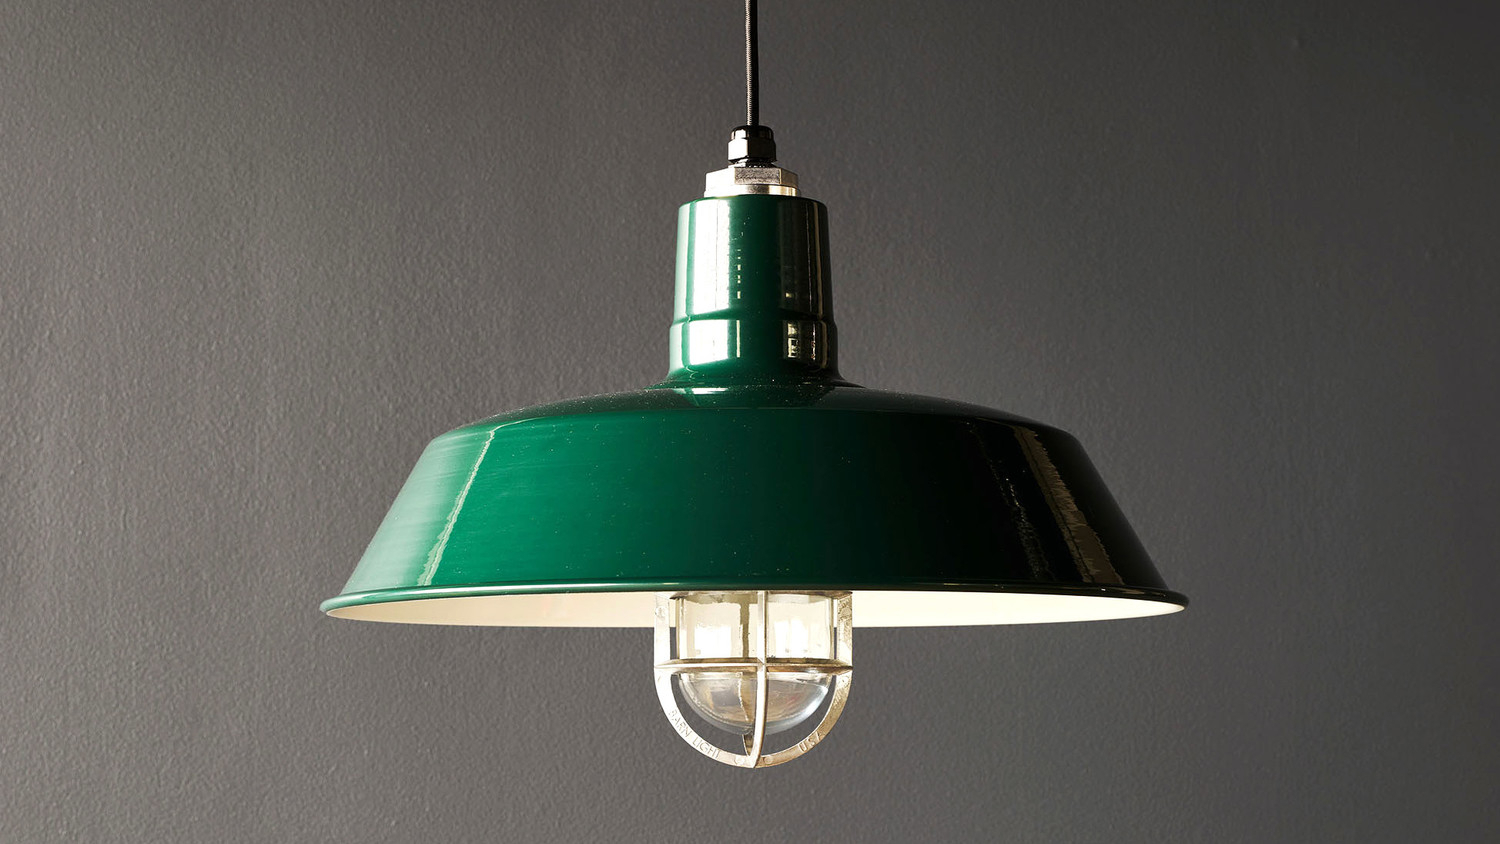 Don't Miss This Deal: Granville 2 Light Single Dome Pendant Intended For Granville 2 Light Single Dome Pendants (Gallery 21 of 30)